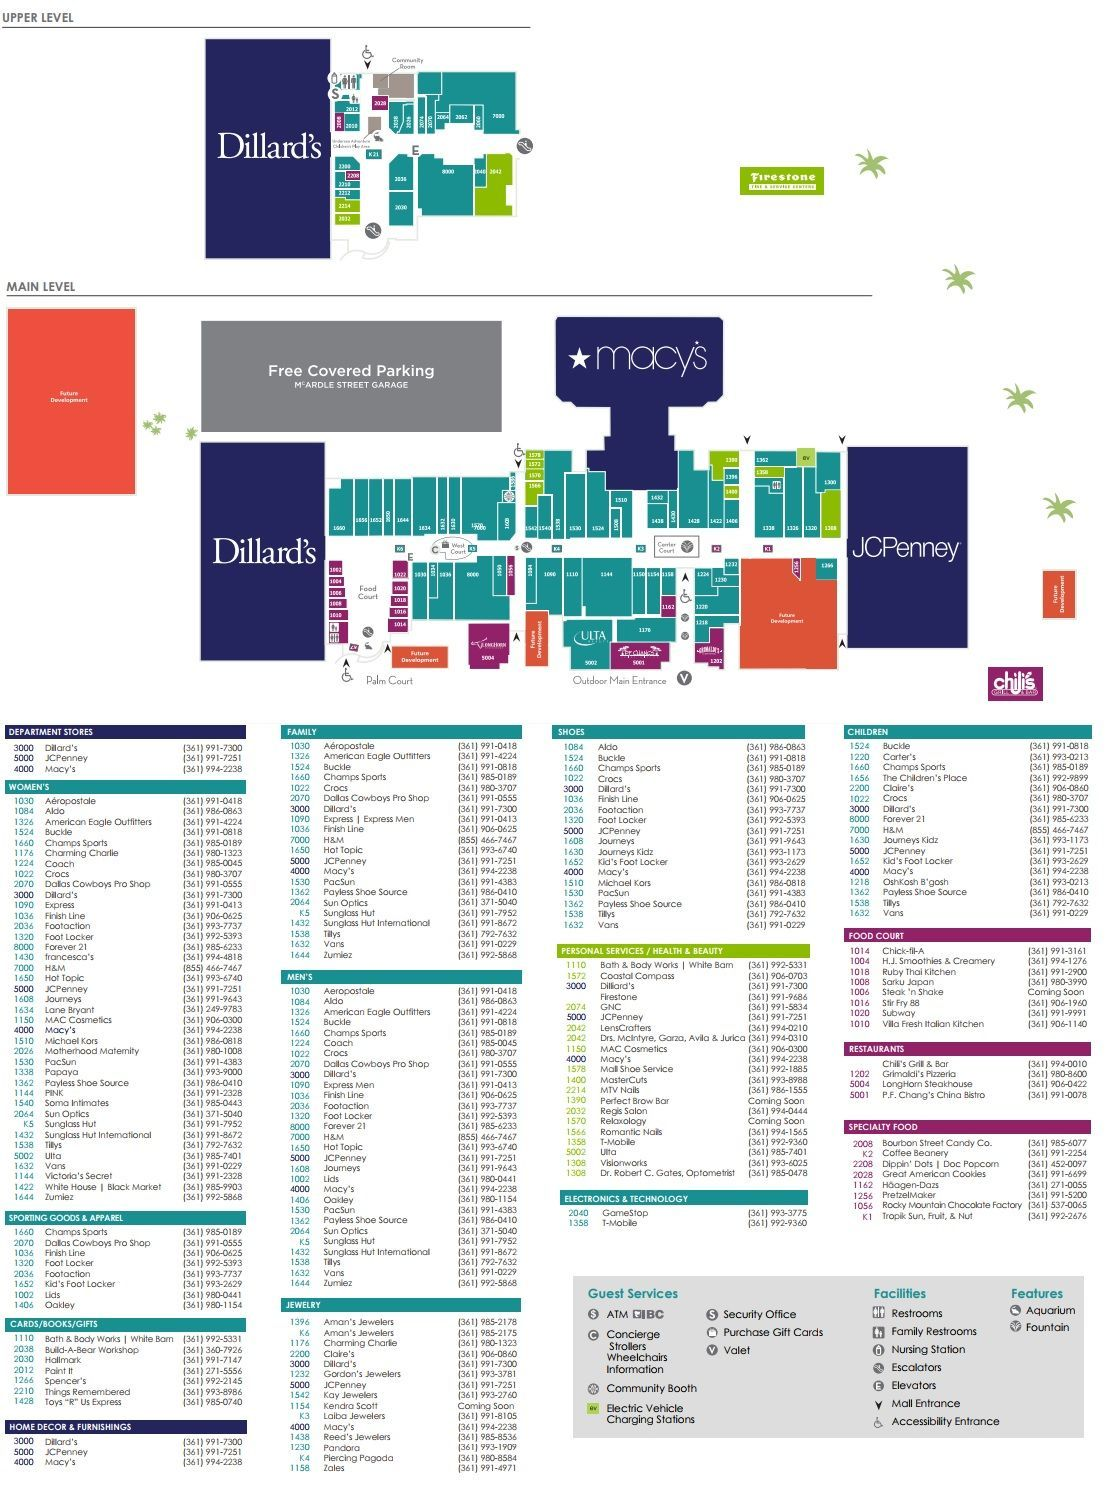 La Palmera shopping plan | Mall maps in 2019 | Corpus ... on augusta mall map, west town mall map, southland mall map, the maine mall map, valley plaza mall map, columbia mall map, carolina place mall map, baybrook mall inside map, cumberland mall map, greenville mall map, greenwood mall map, cortana mall map, woodbridge center map, fresno fashion fair map, the parks at arlington map, the shops at la cantera map, city of louisiana map, the oaks mall map, magnolia cemetery map,